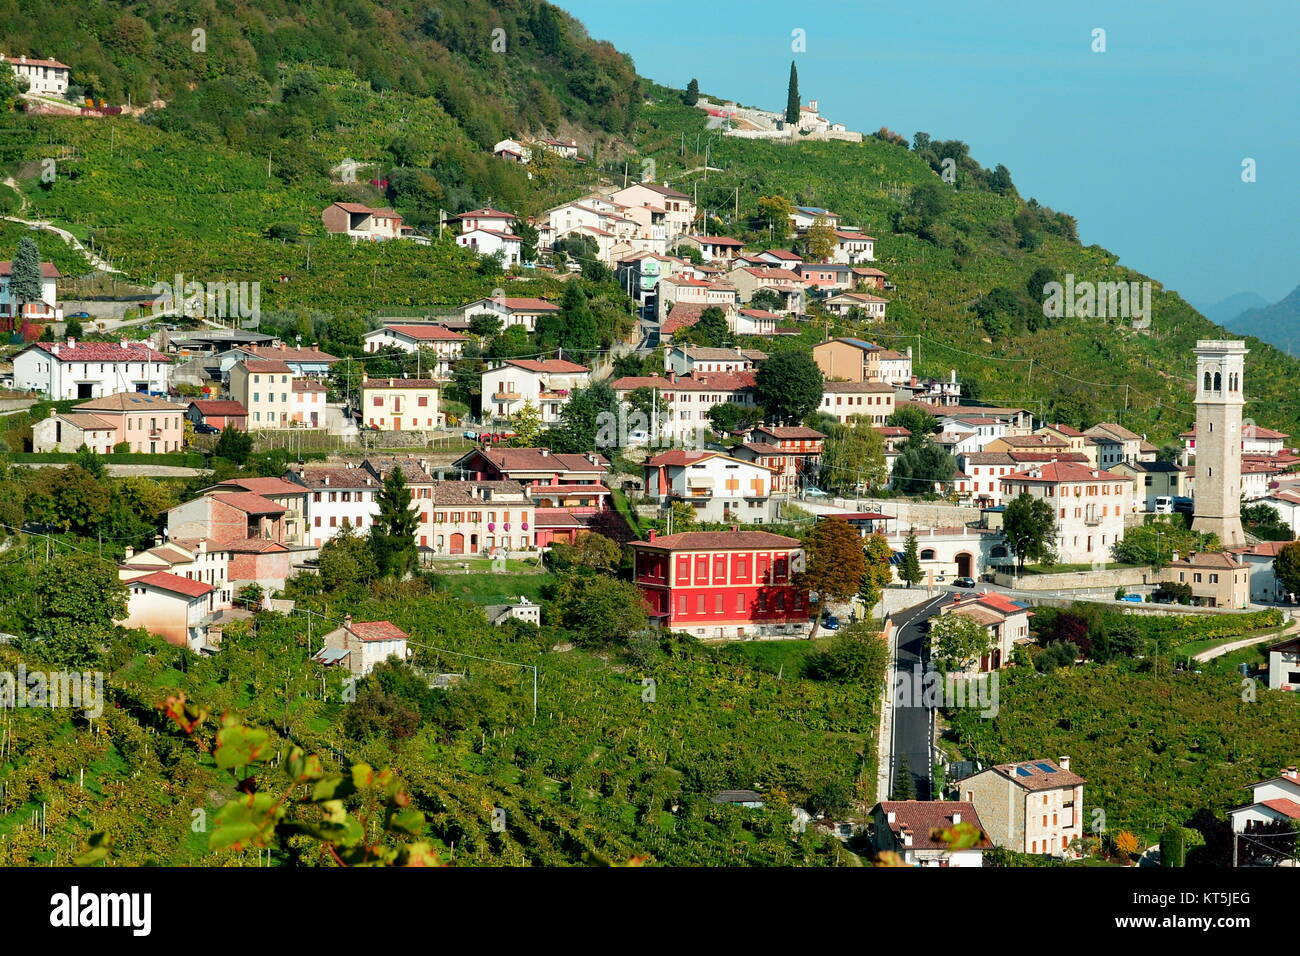 The beautiful hill side town of Valdobbiadene Italy in the Trevisio area. - Stock Image